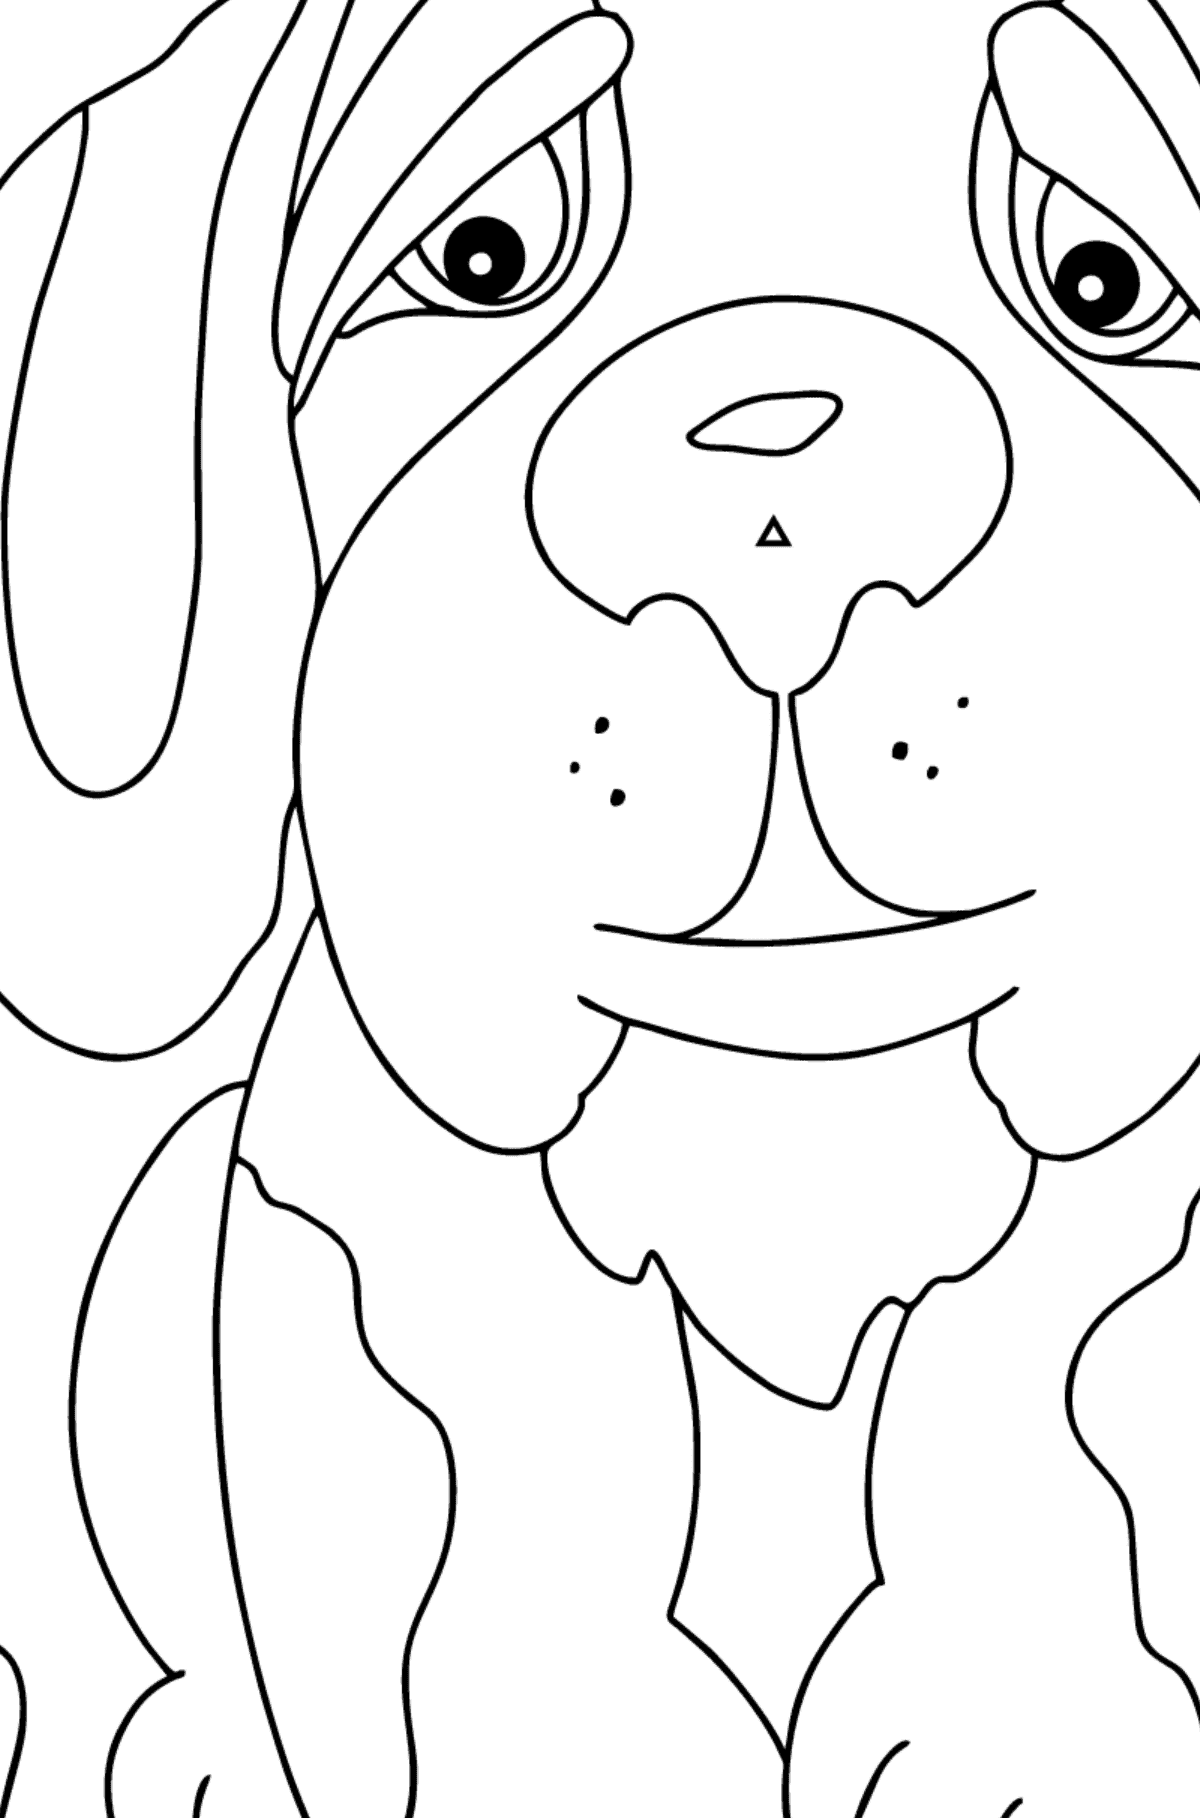 Coloring Page - A Dog is Looking Out a Butterfly for Kids  - Color by Symbols and Geometric Shapes